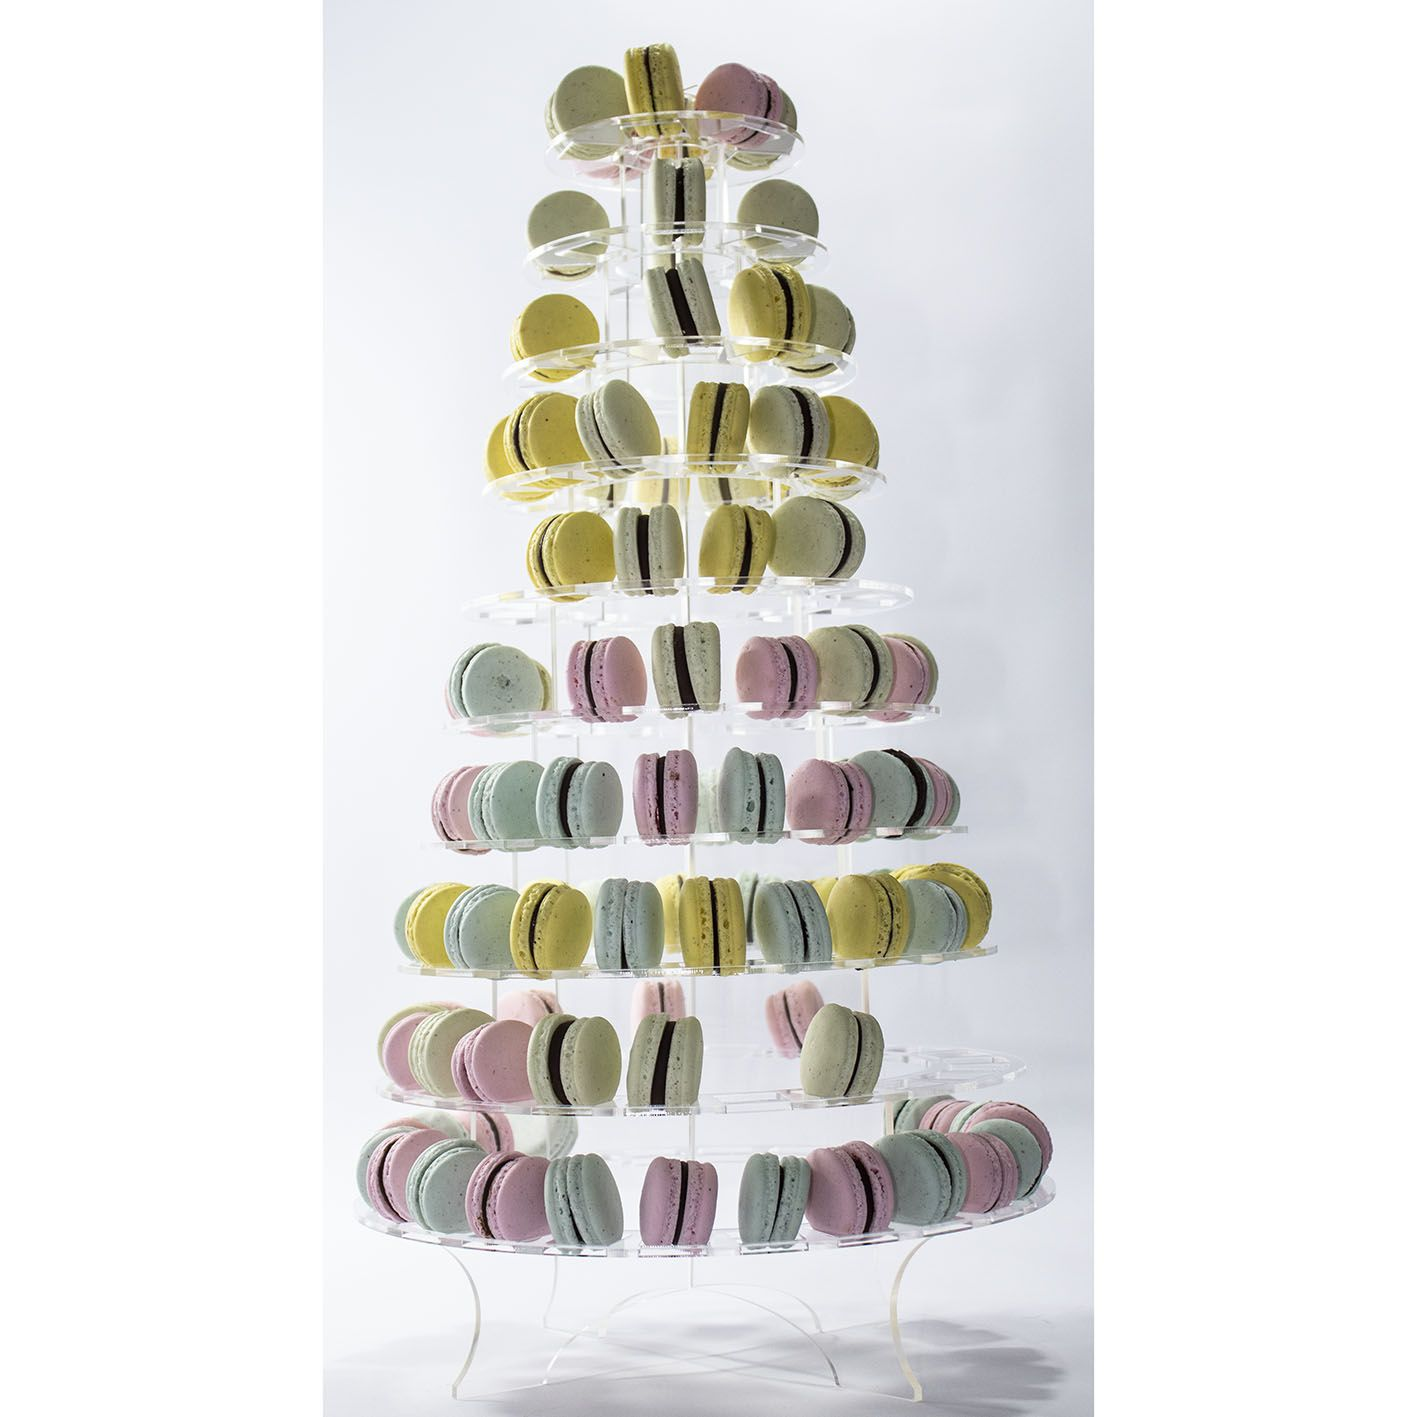 Torre 150 Macarons 10 Andares